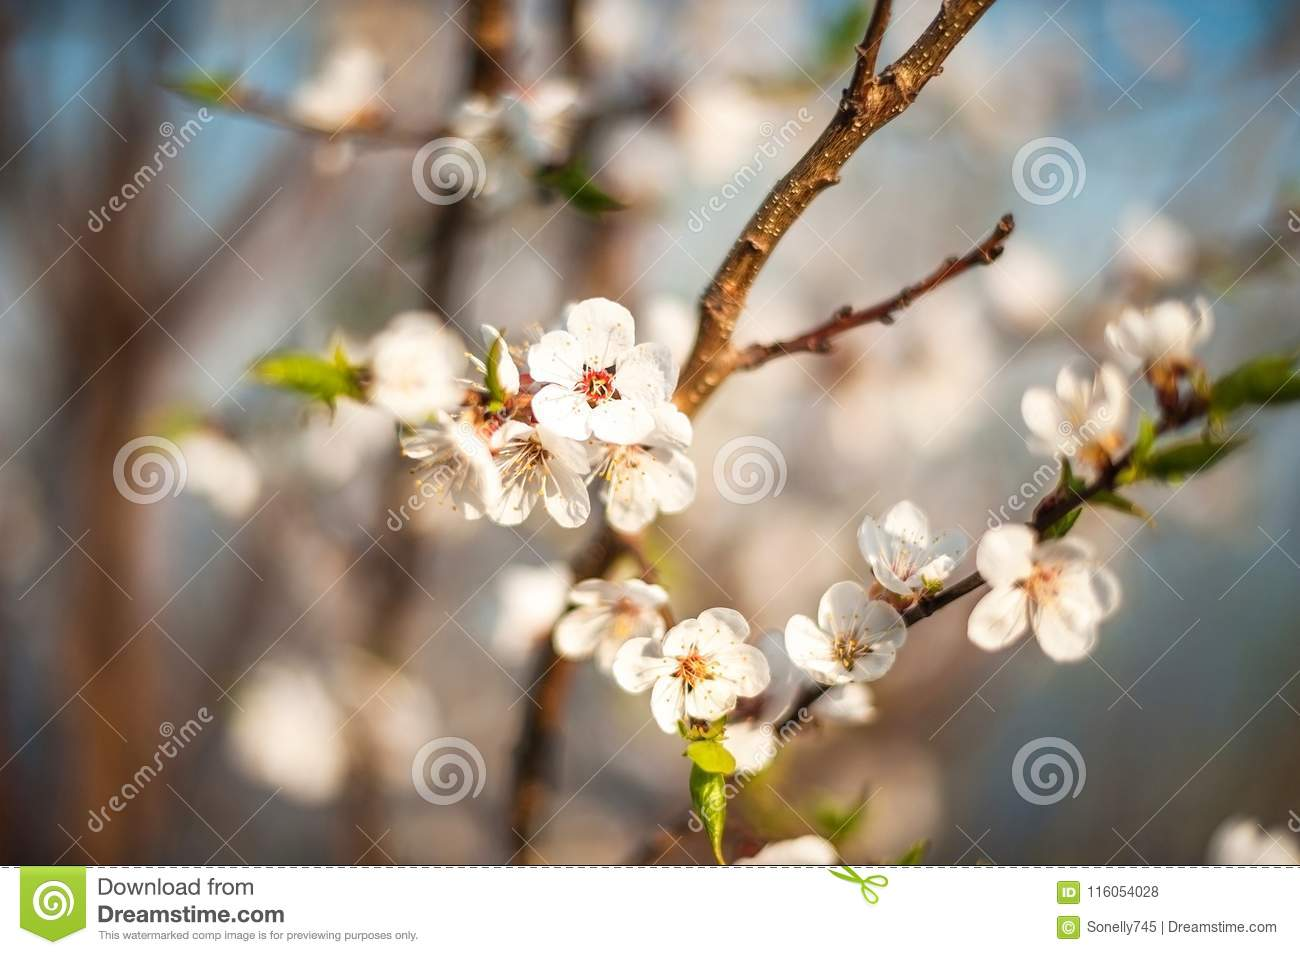 Branch of a blossoming tree in spring. How the fruit tree blossoms, apple, cherry, pear, plum. Close-up, texture of natural bark a